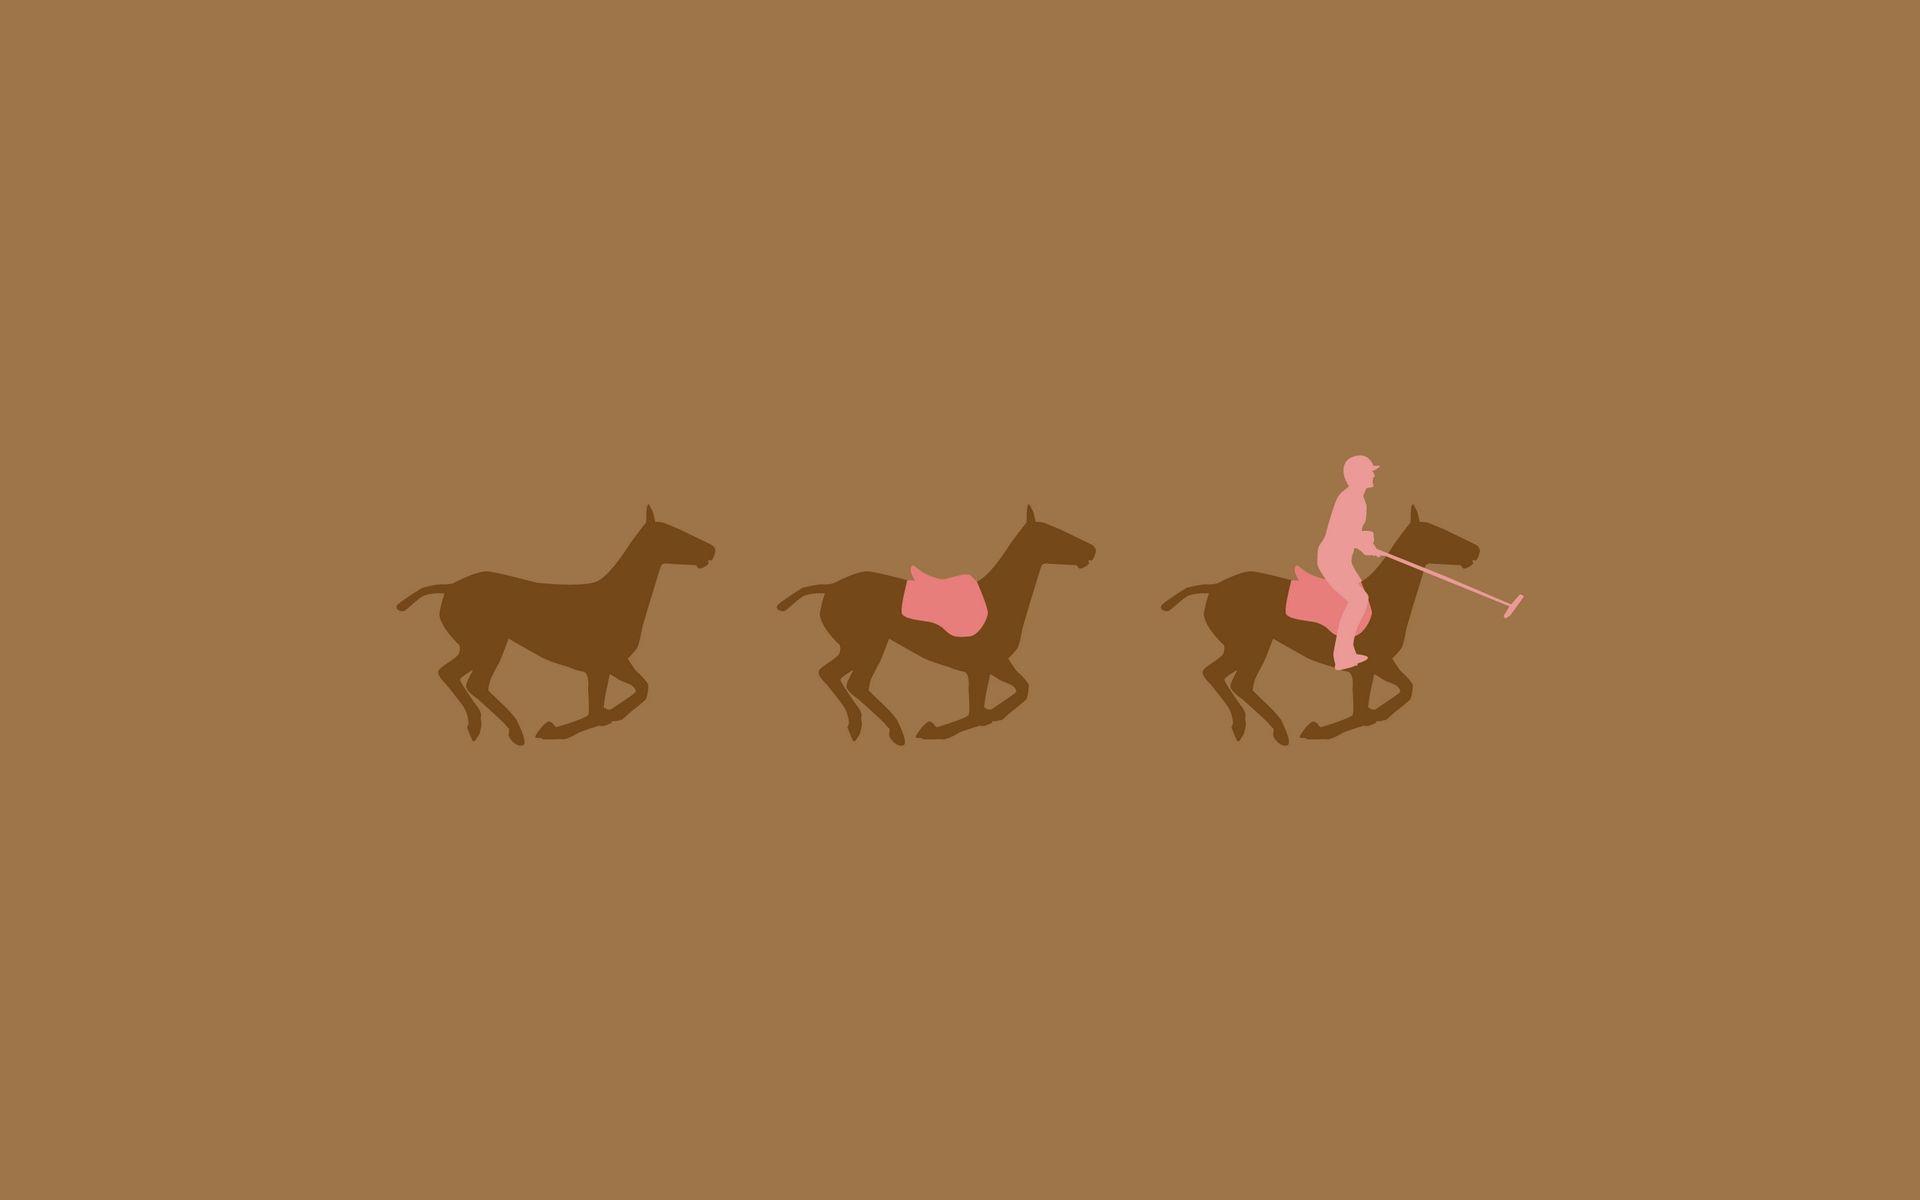 133036 download wallpaper Vector, Horses, Rider, Horseman, Picture, Drawing screensavers and pictures for free